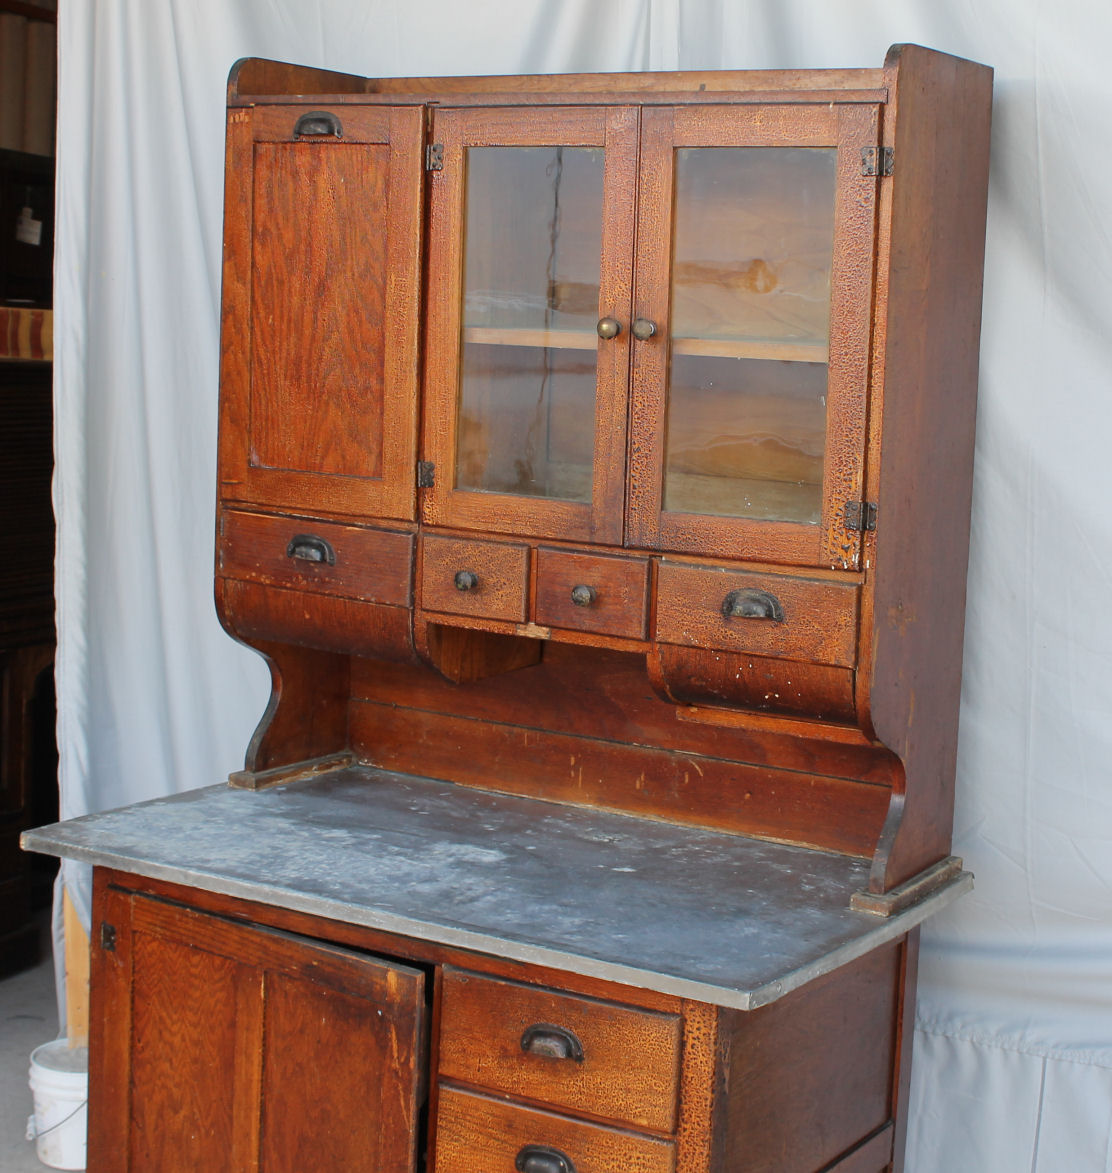 What Is The Height Of A Kitchen Cabinet Bargain John's Antiques | Antique Oak Kitchen Cabinet